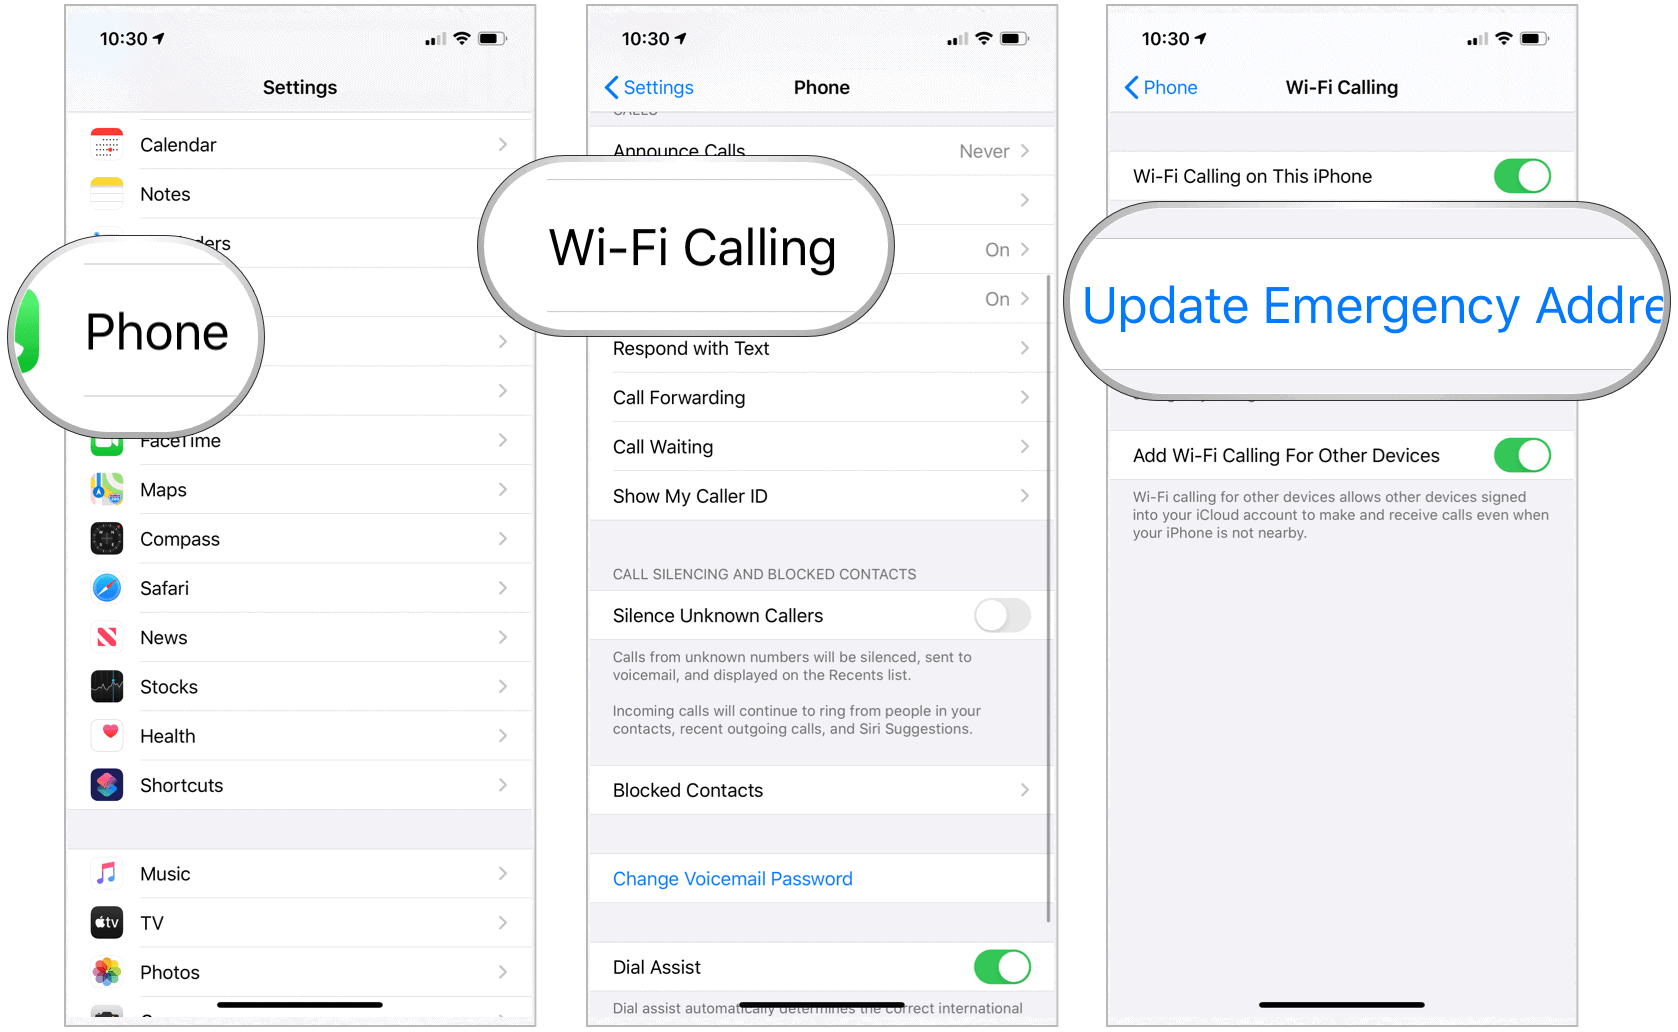 iPhone update emergency address information